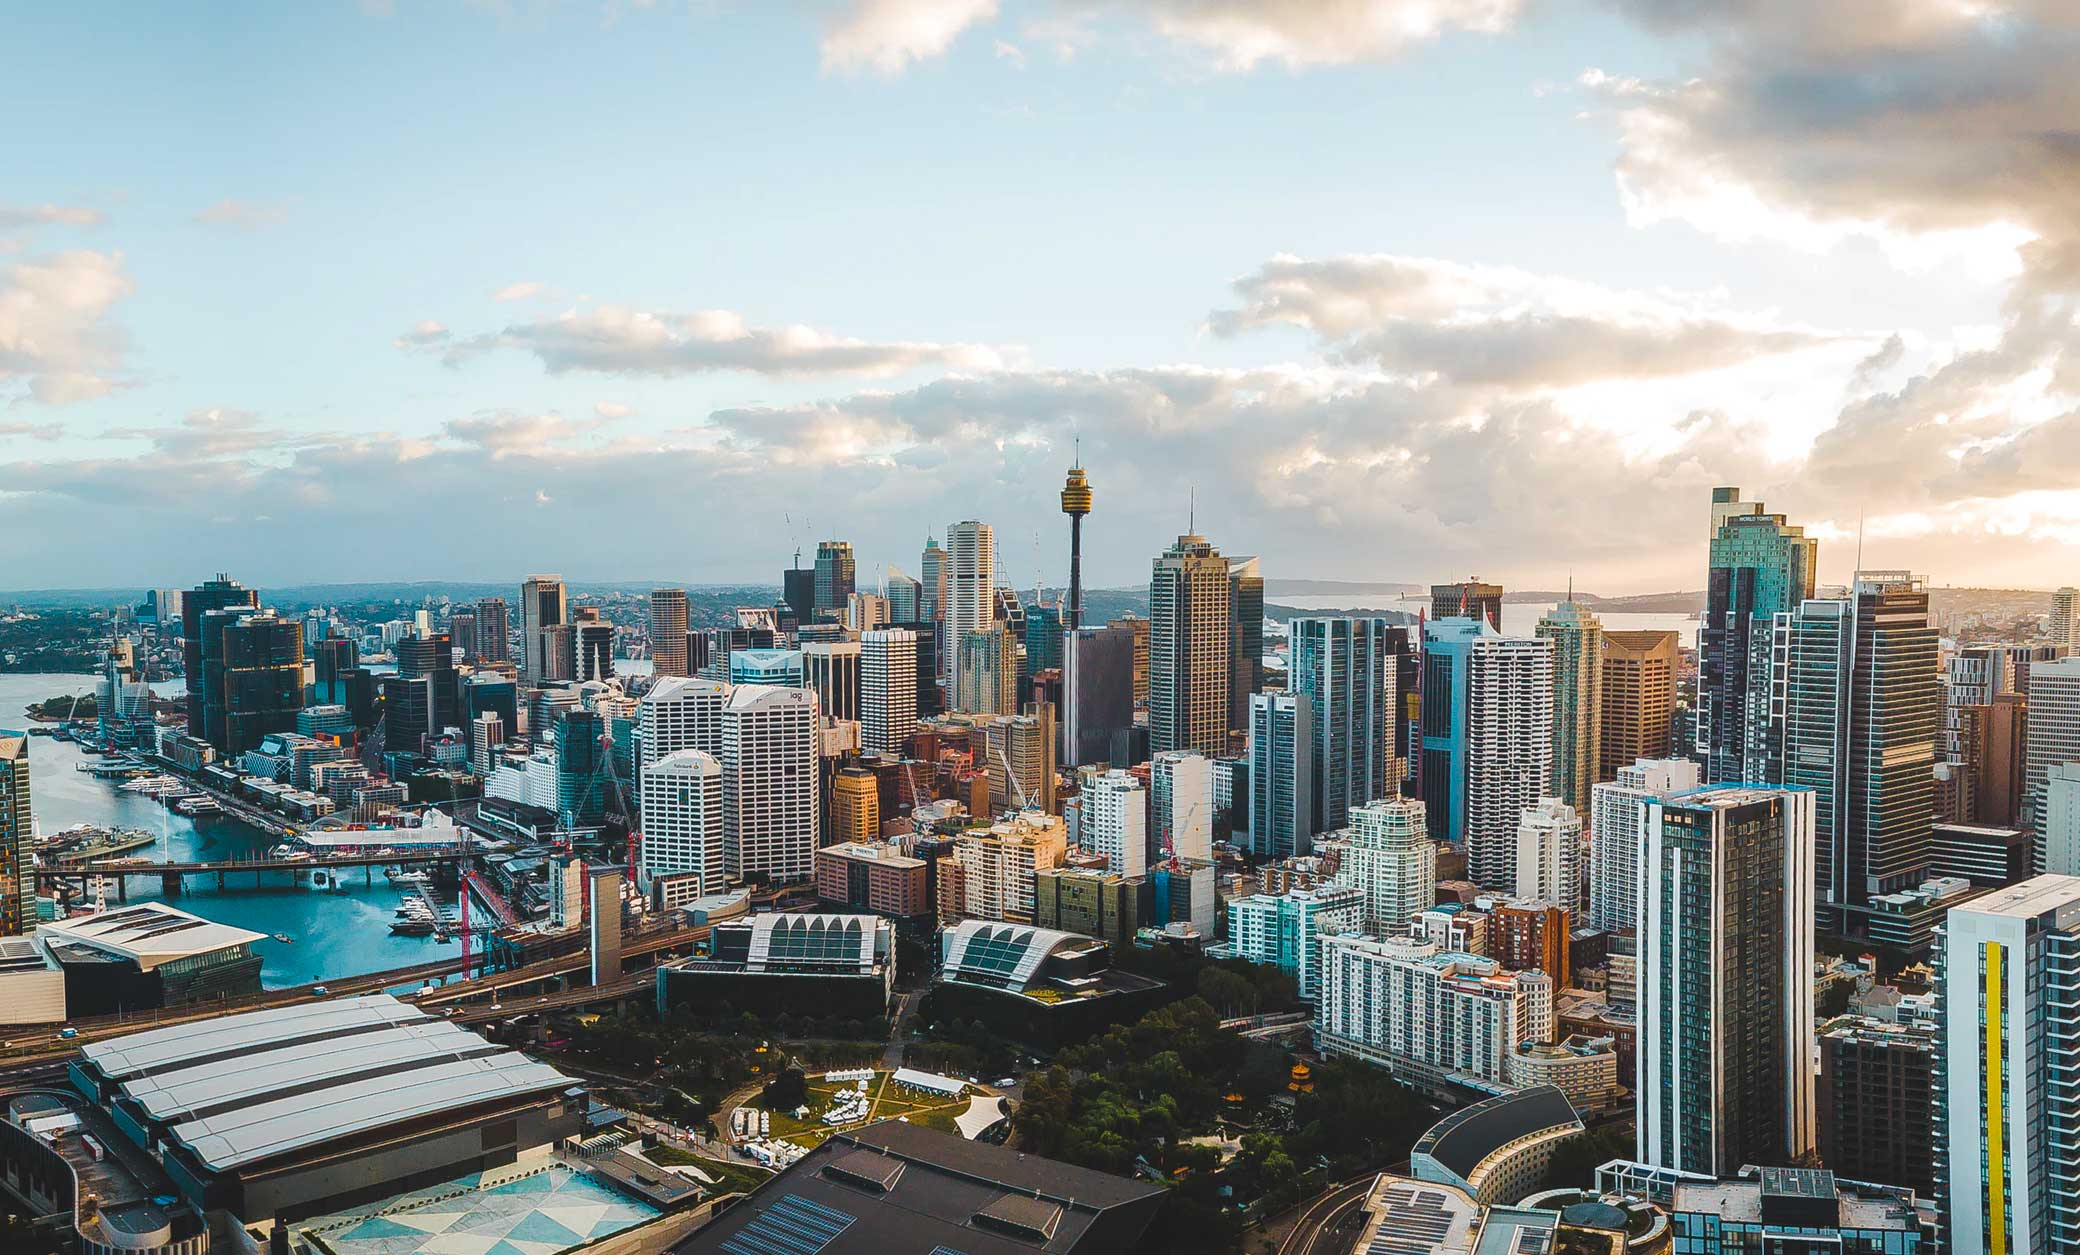 Australian house prices predicted to RISE in 2020 and 2021